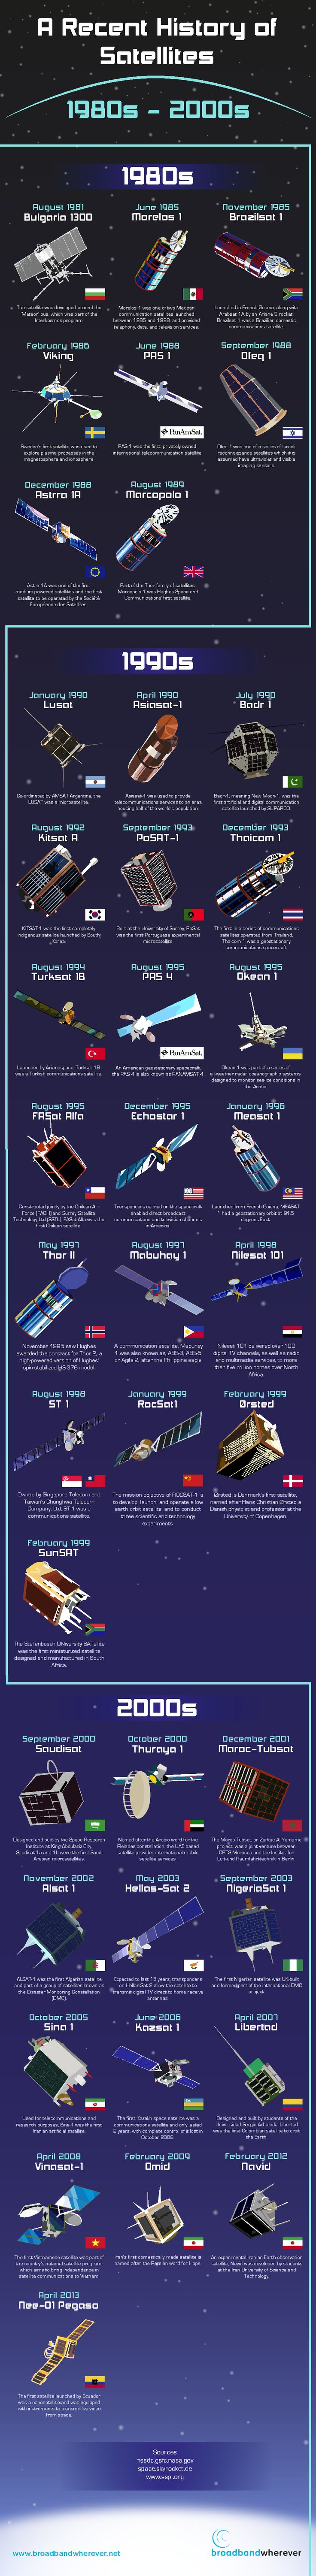 A Recent History of Satellites   #infographic #History #Satellites